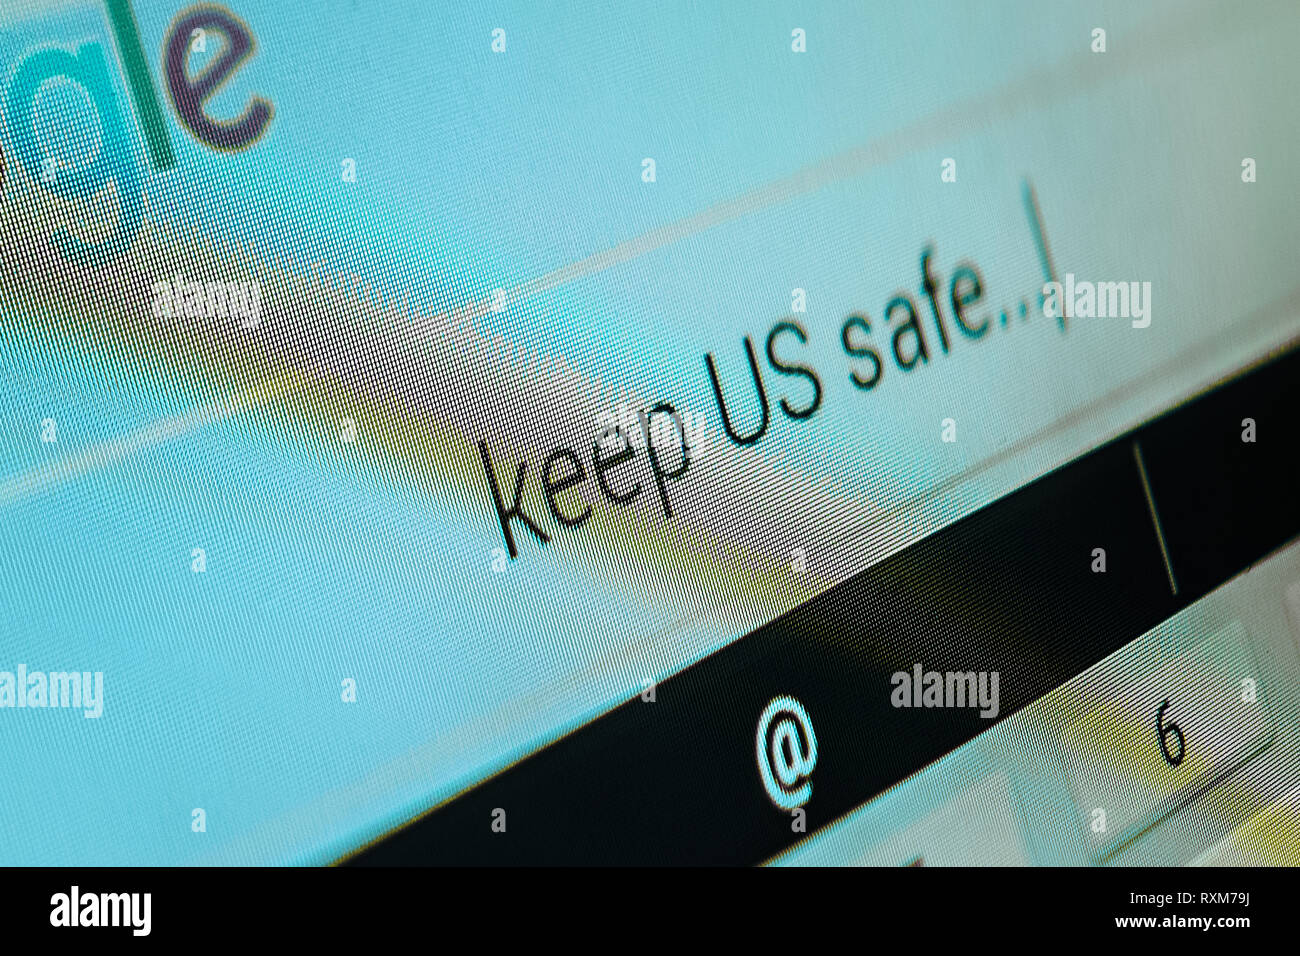 On the computer screen is written: 'keep US safe'. - Stock Image